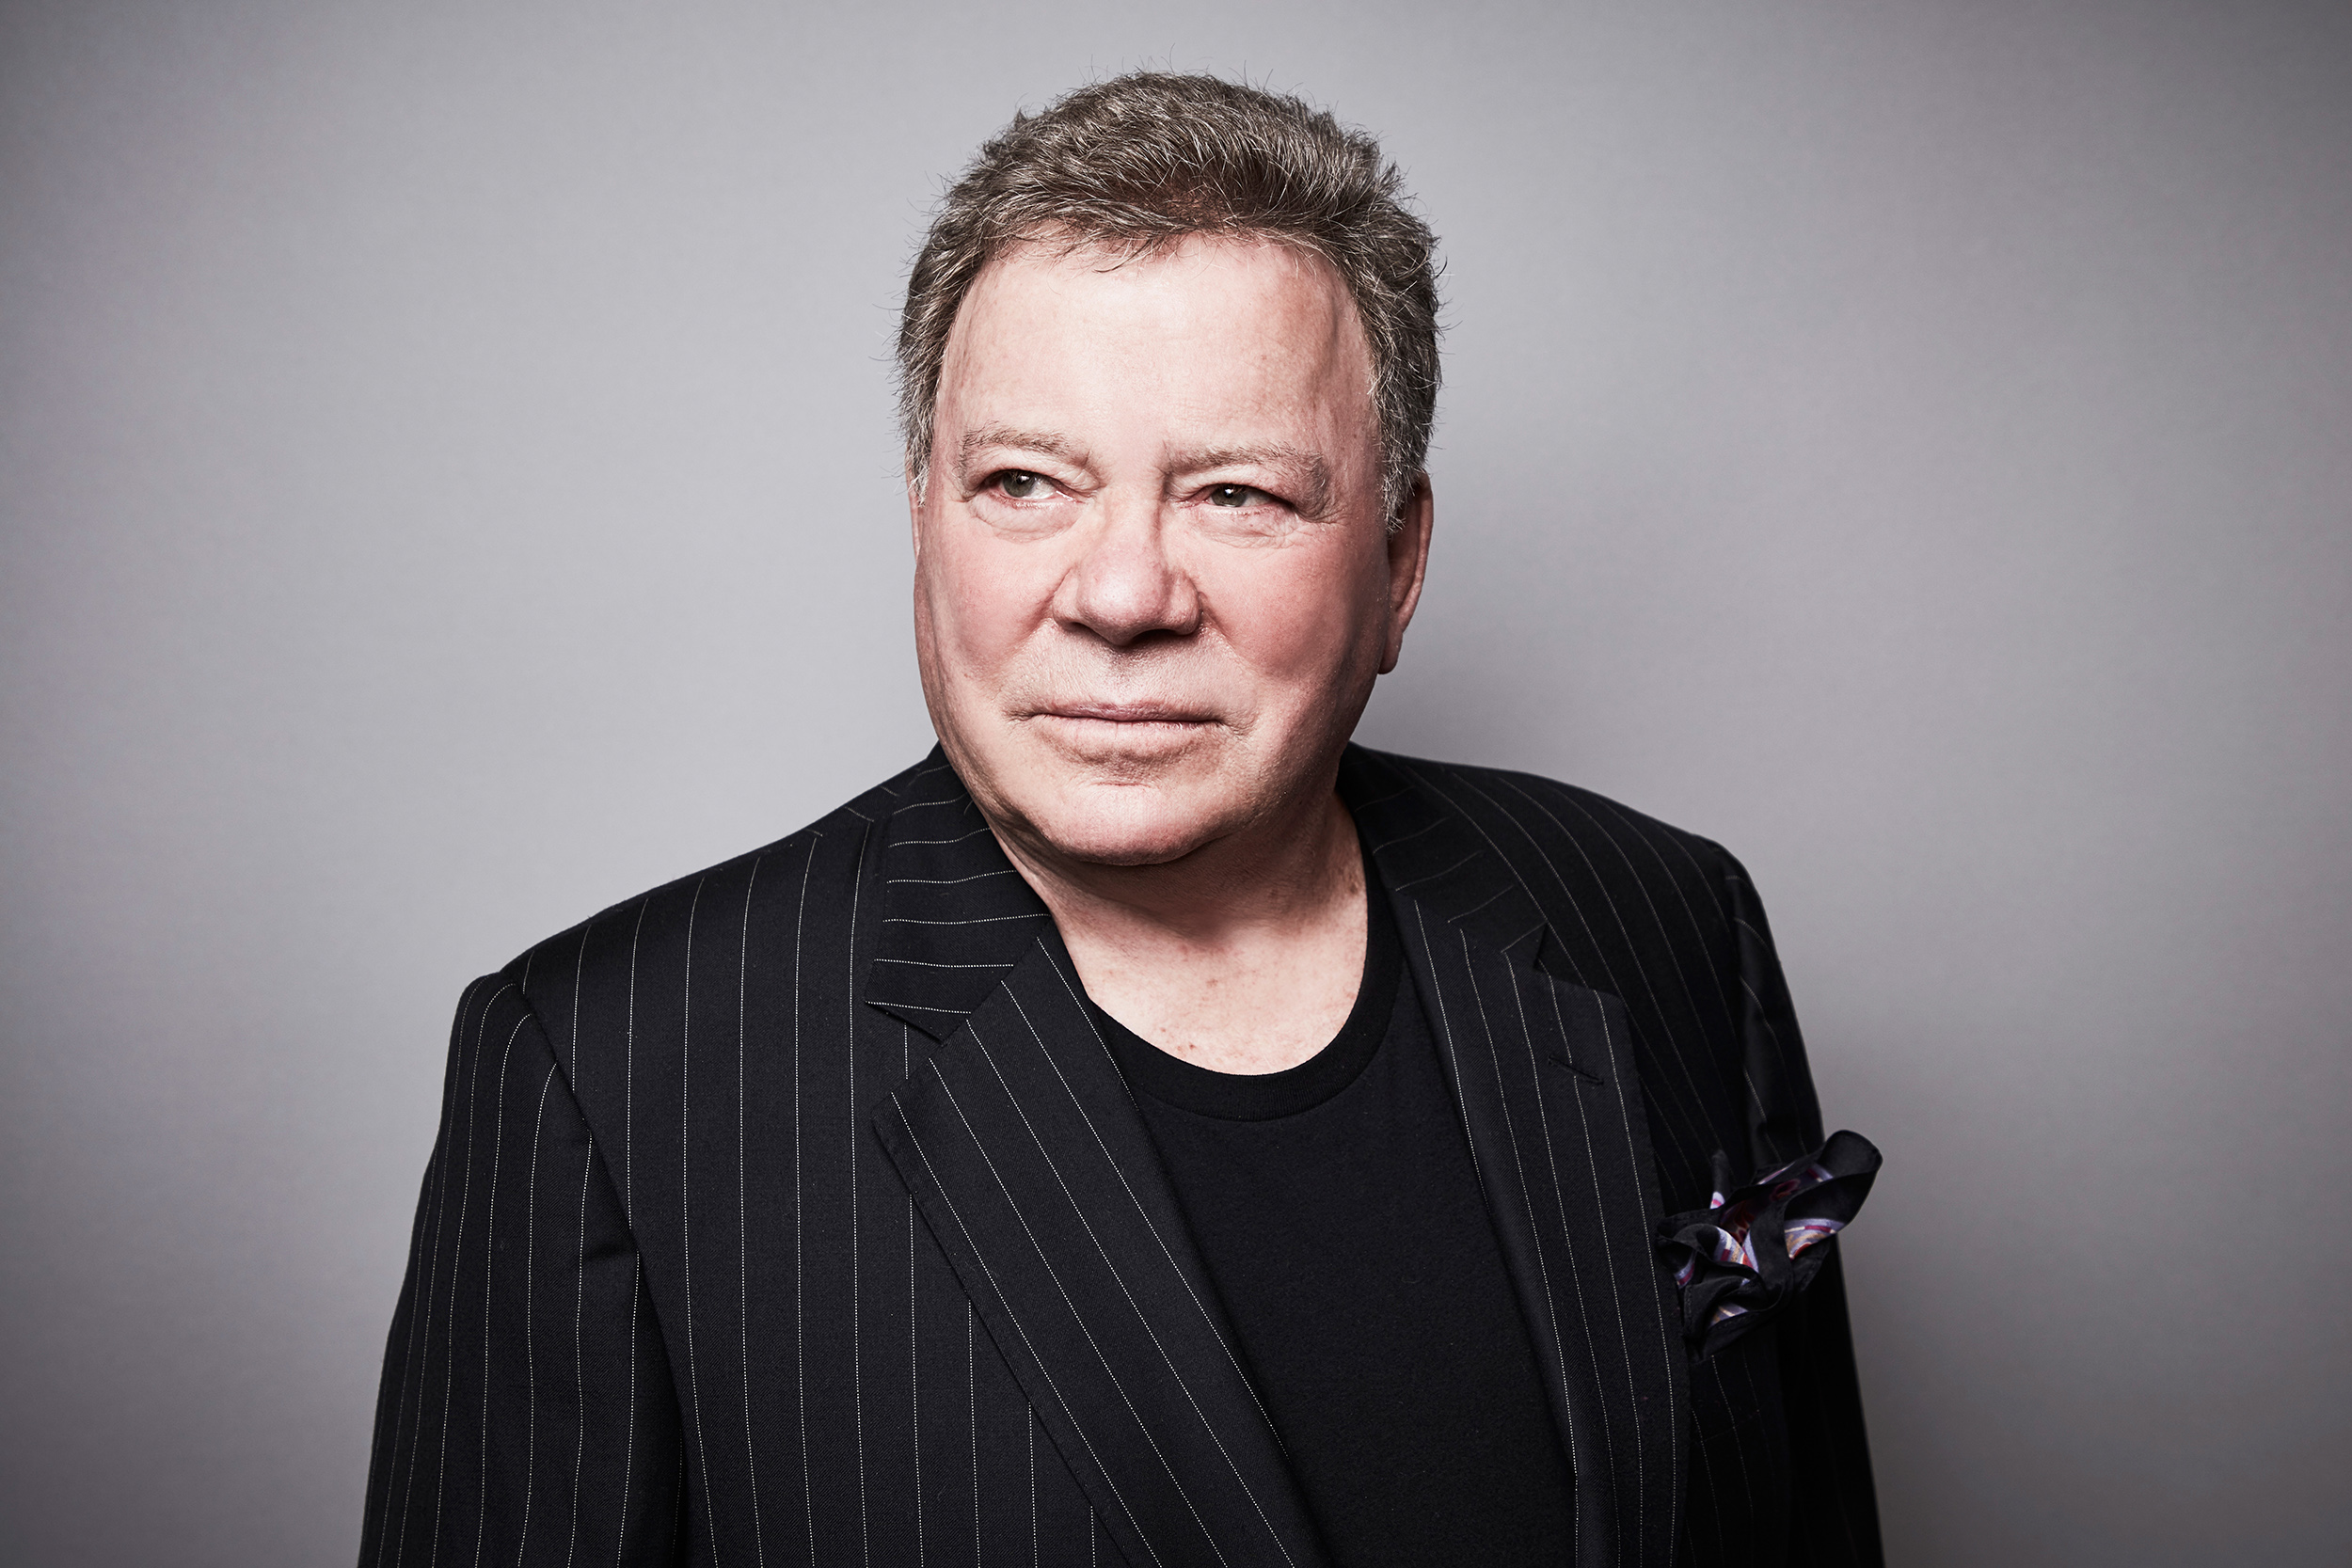 """William Shatner Net Worth: How Rich Is The """"Star Trek"""" Actor? - - The Artistree"""